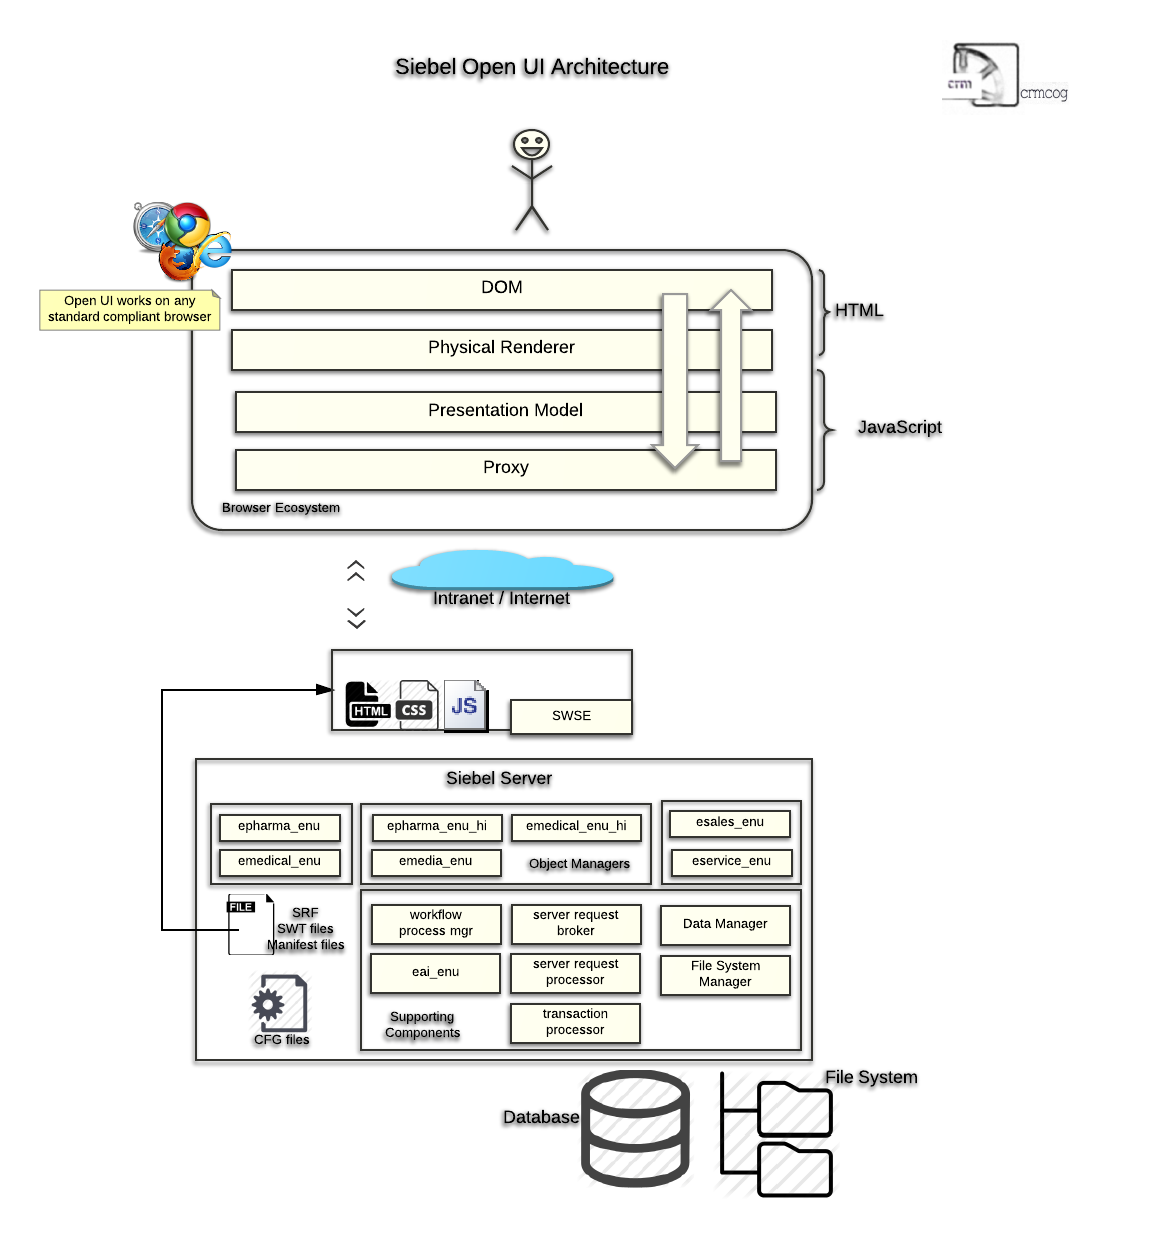 siebel open ui architecture diagram